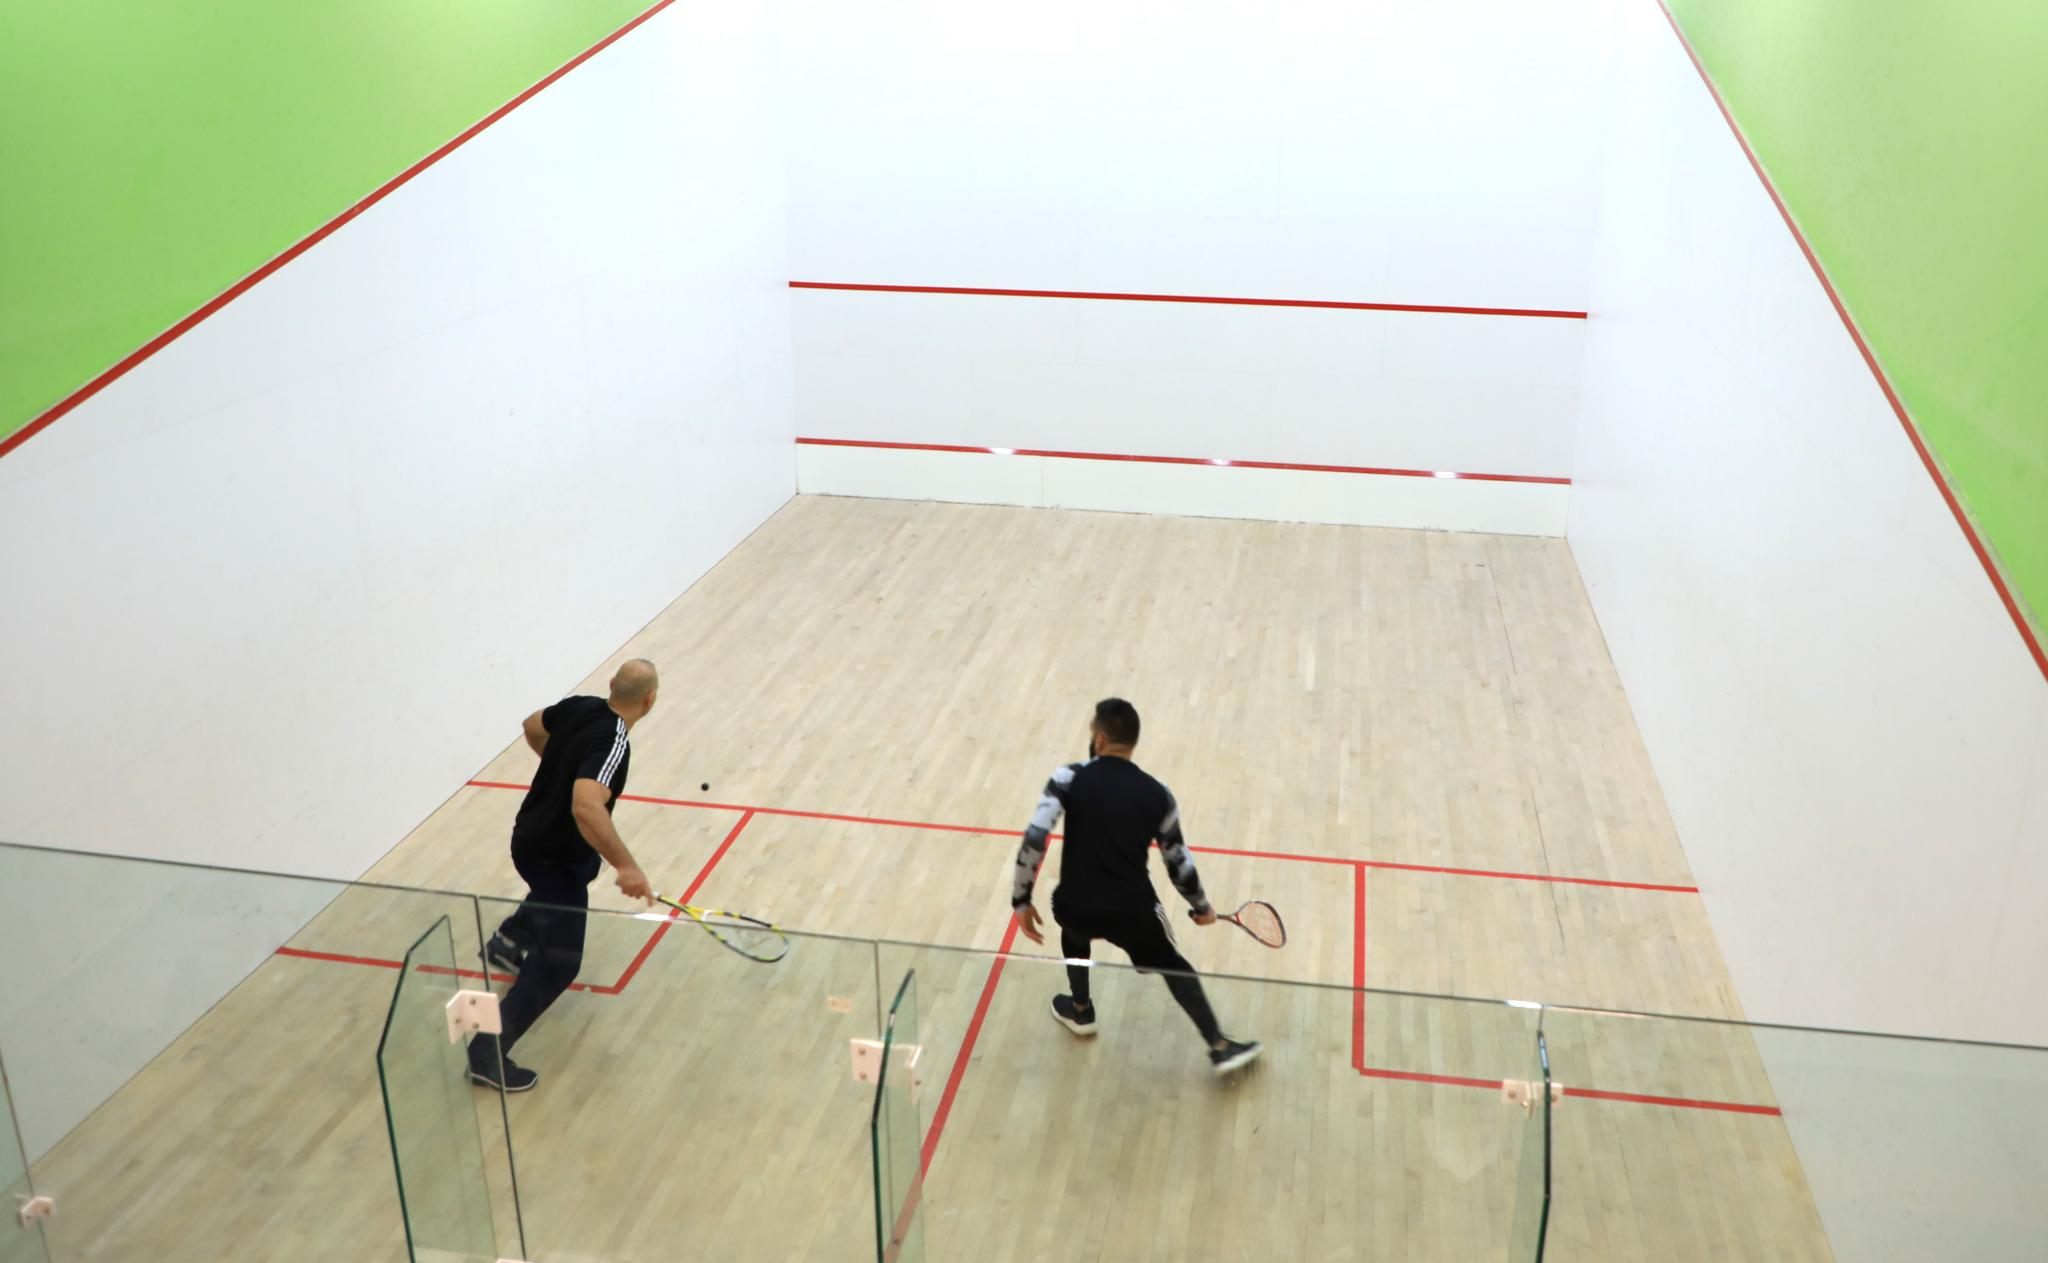 The conclusion of the first Squash championship in AAUP